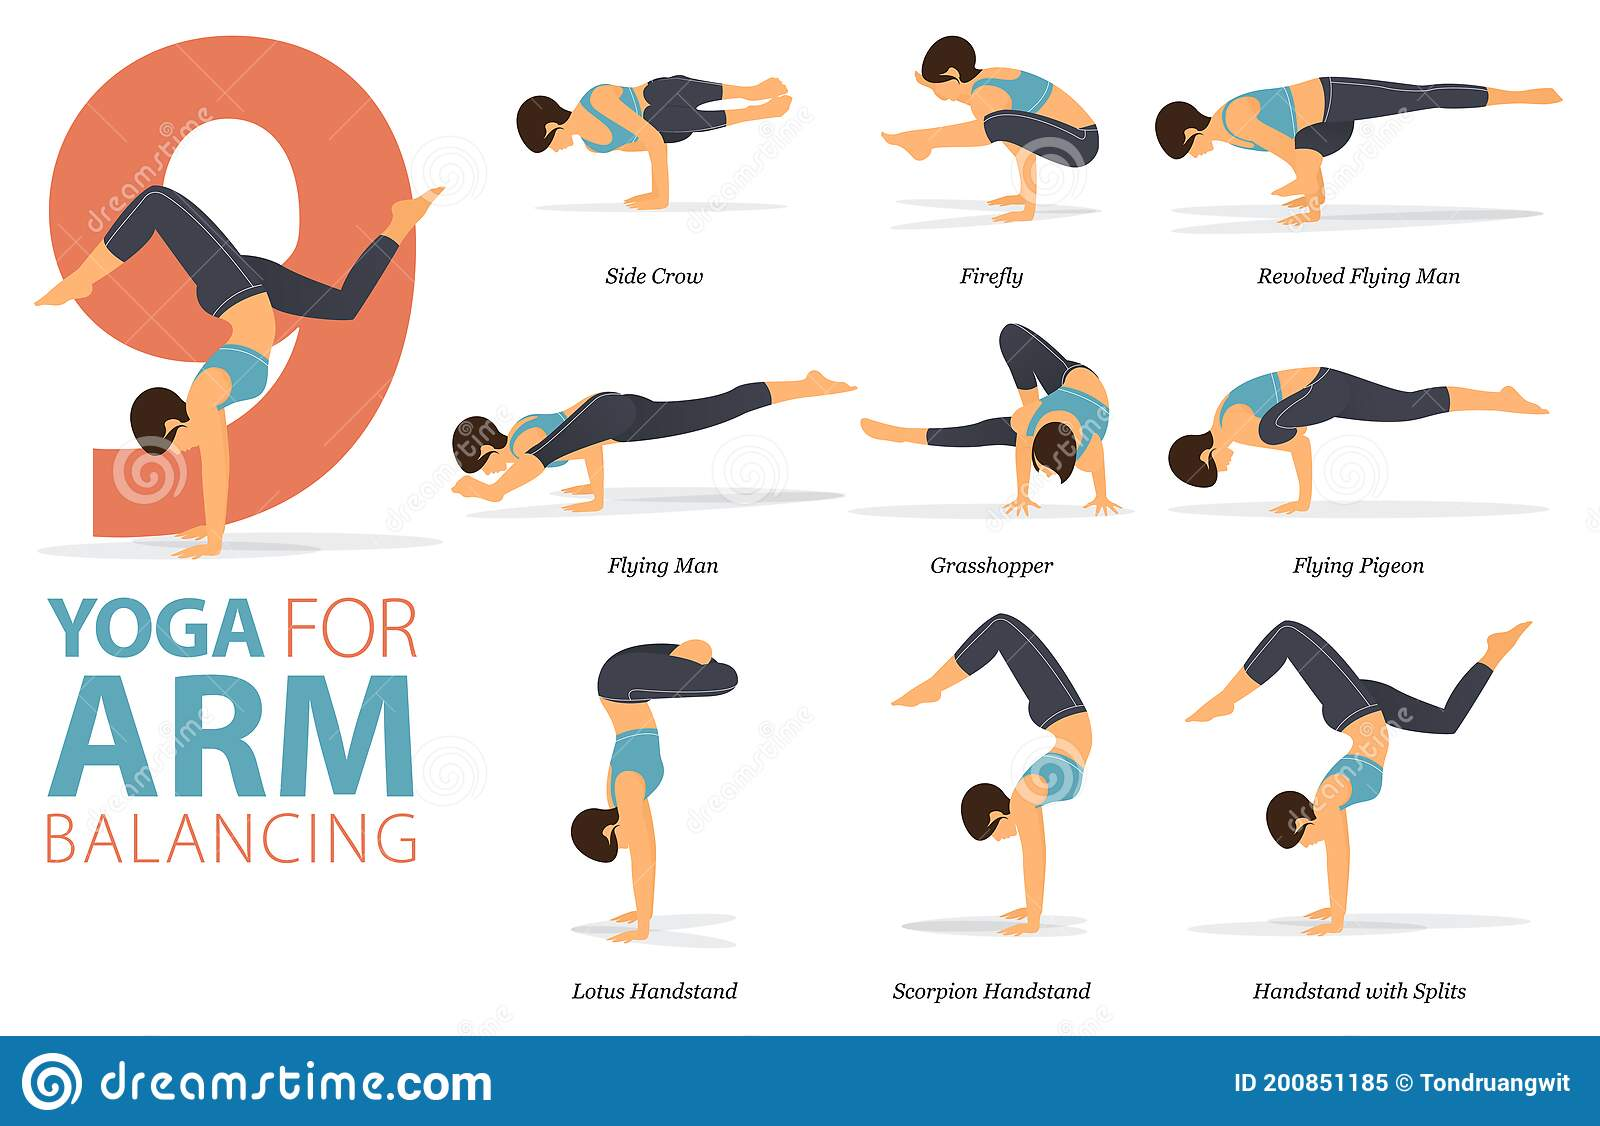 50 Yoga Poses Or Asana Posture For Workout In Arm Balance Concept ...